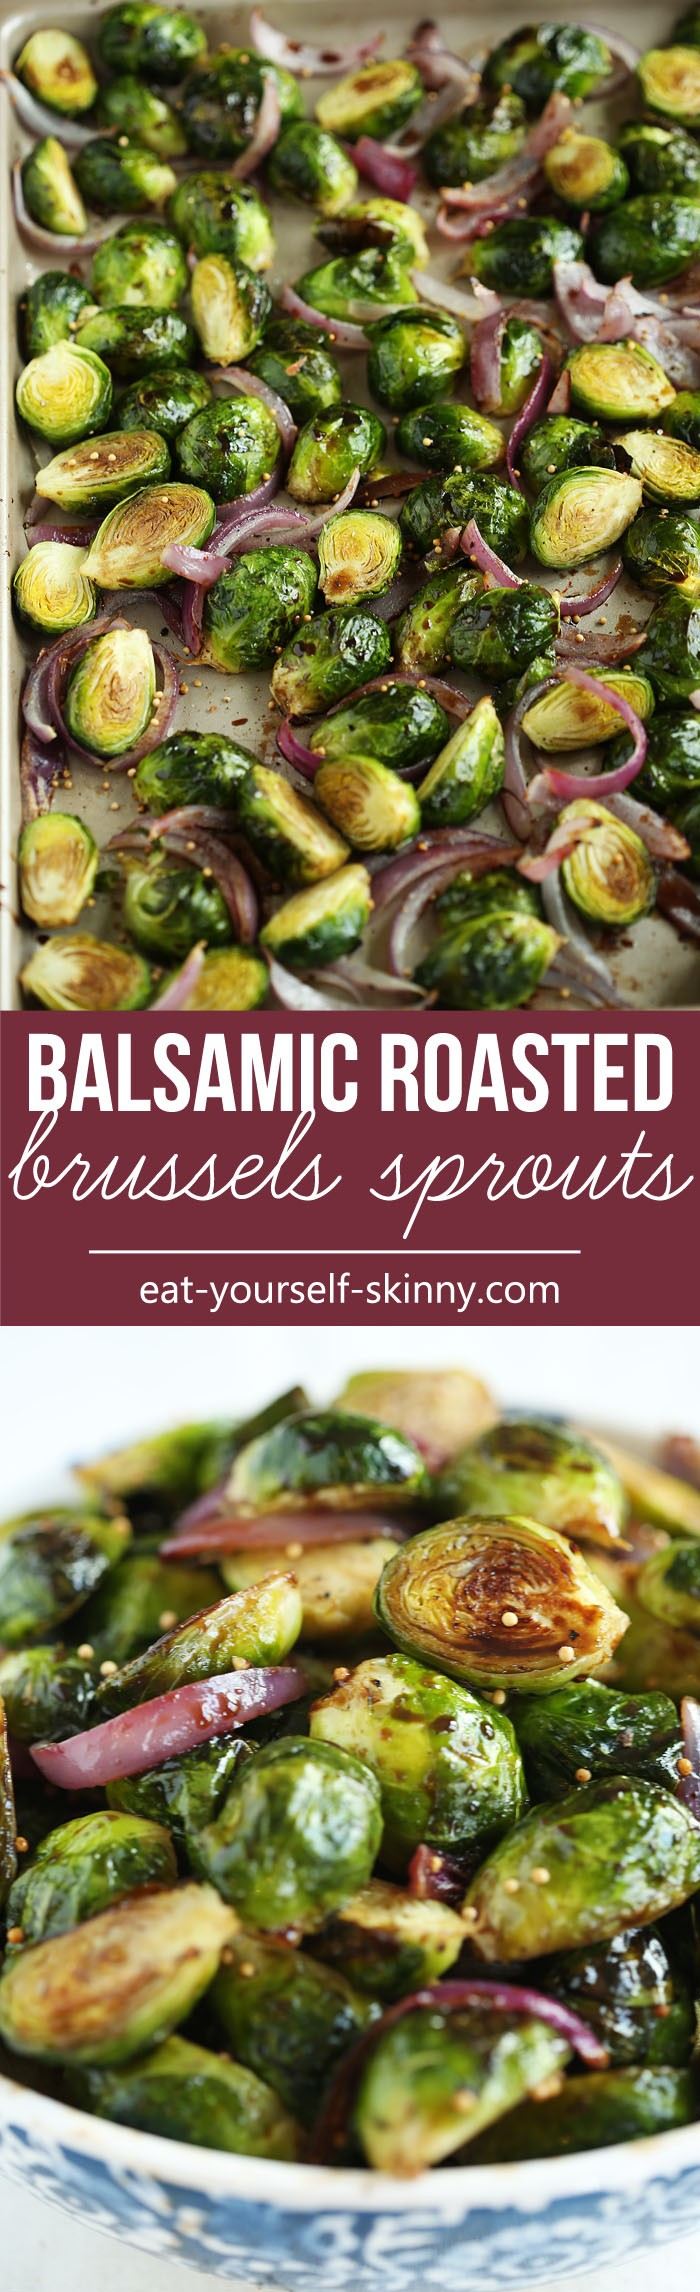 Balsamic Roasted Brussels Sprouts - Eat Yourself Skinny